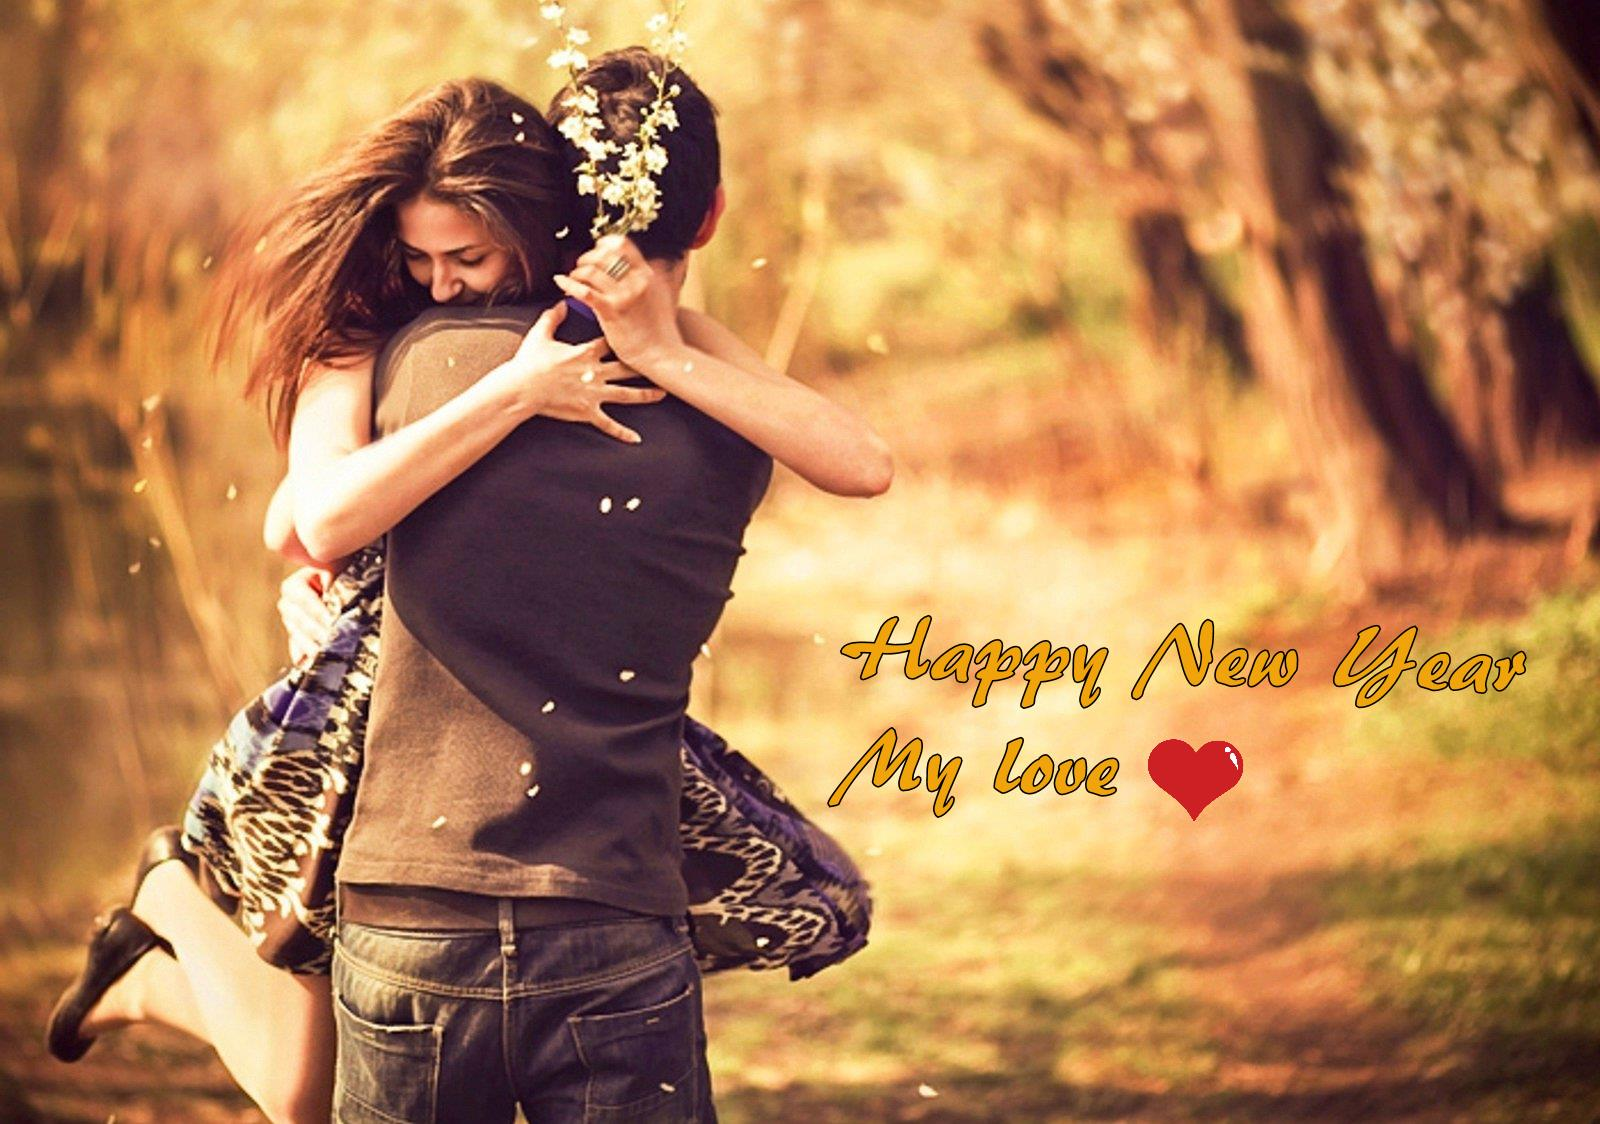 Happy New Year 2016 Greetings For Love In Whatsapp